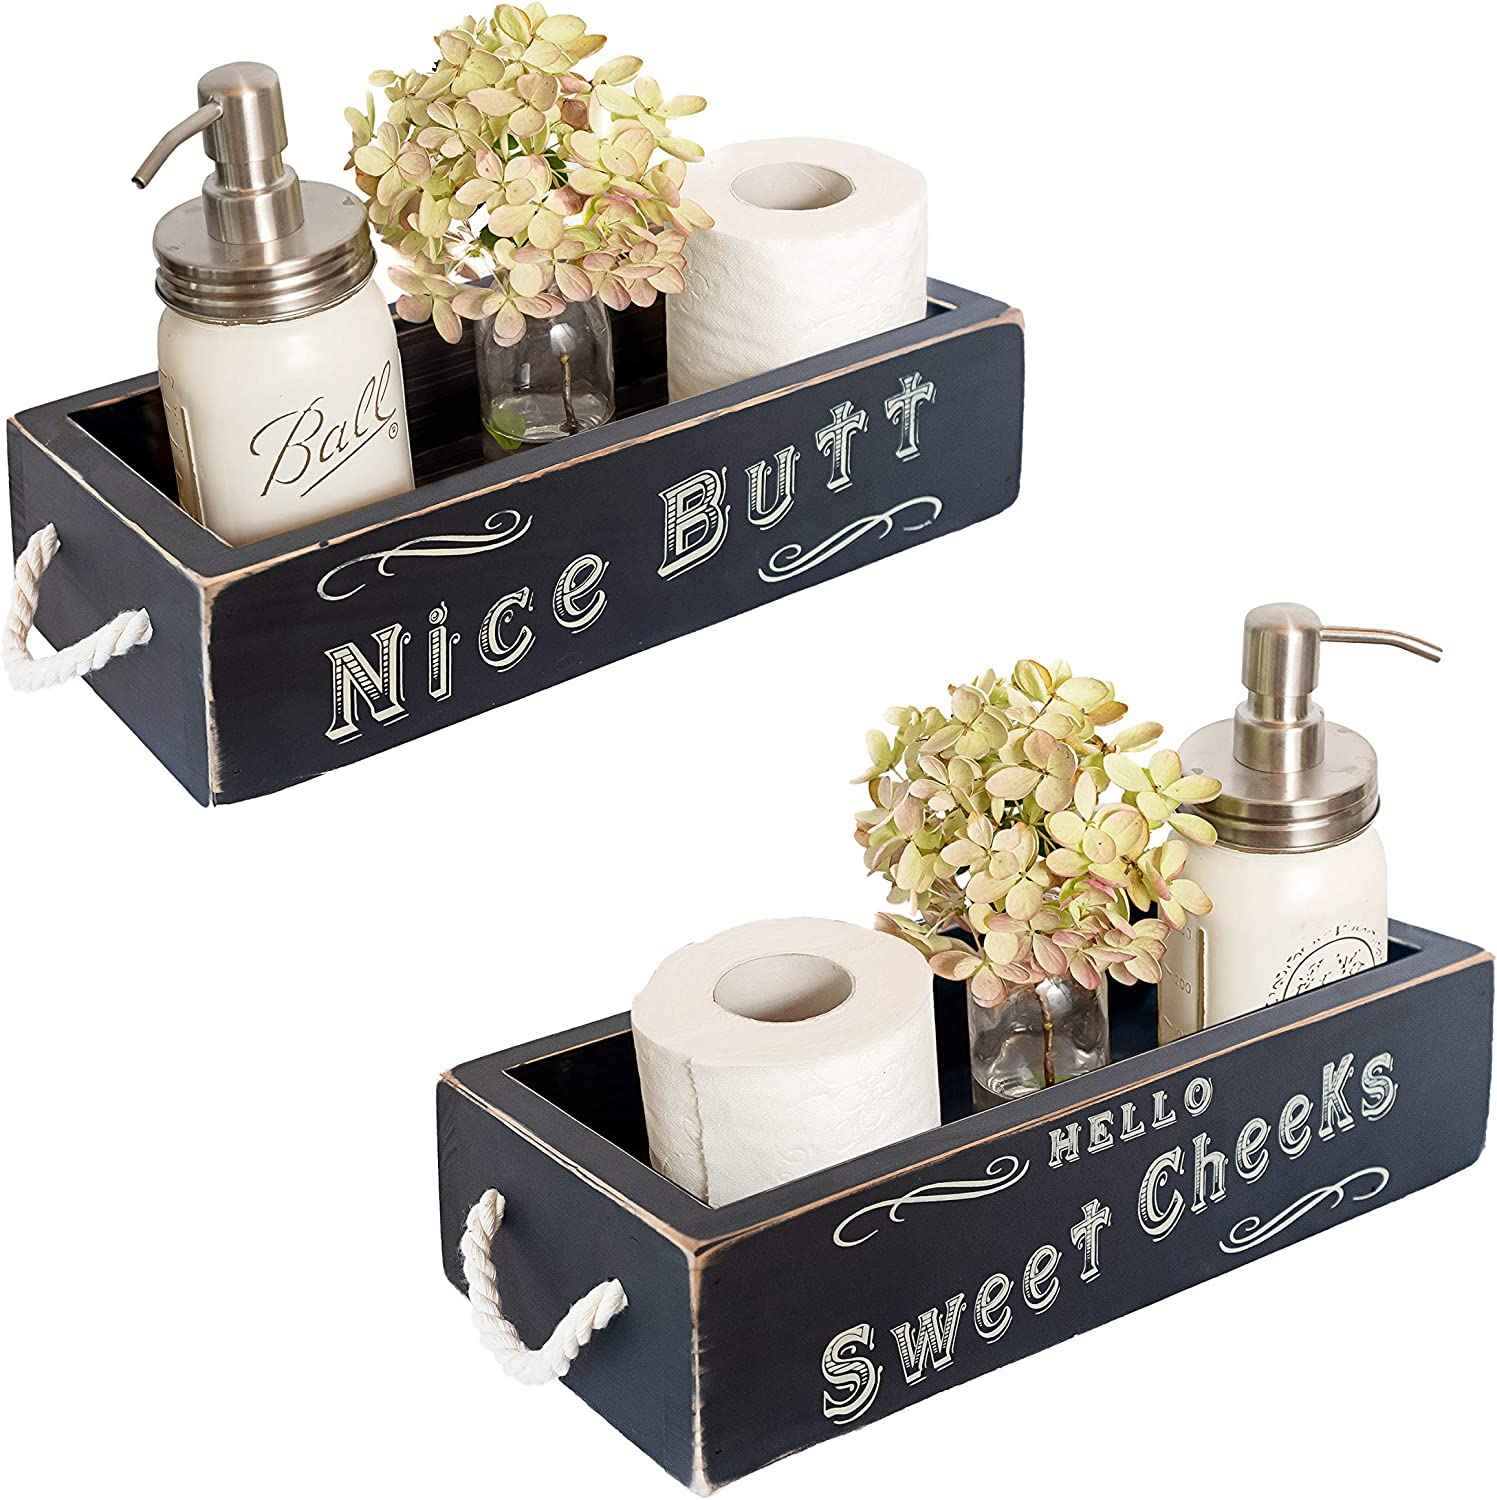 Nice Butt Bathroom Decor Box, 2 Sides with Funny Sayings - Funny Toilet Paper Holder Perfect for Farmhouse Bathroom Decor, Toilet Paper Storage, Rustic Bathroom Decor, or Diaper Organizer (Black)